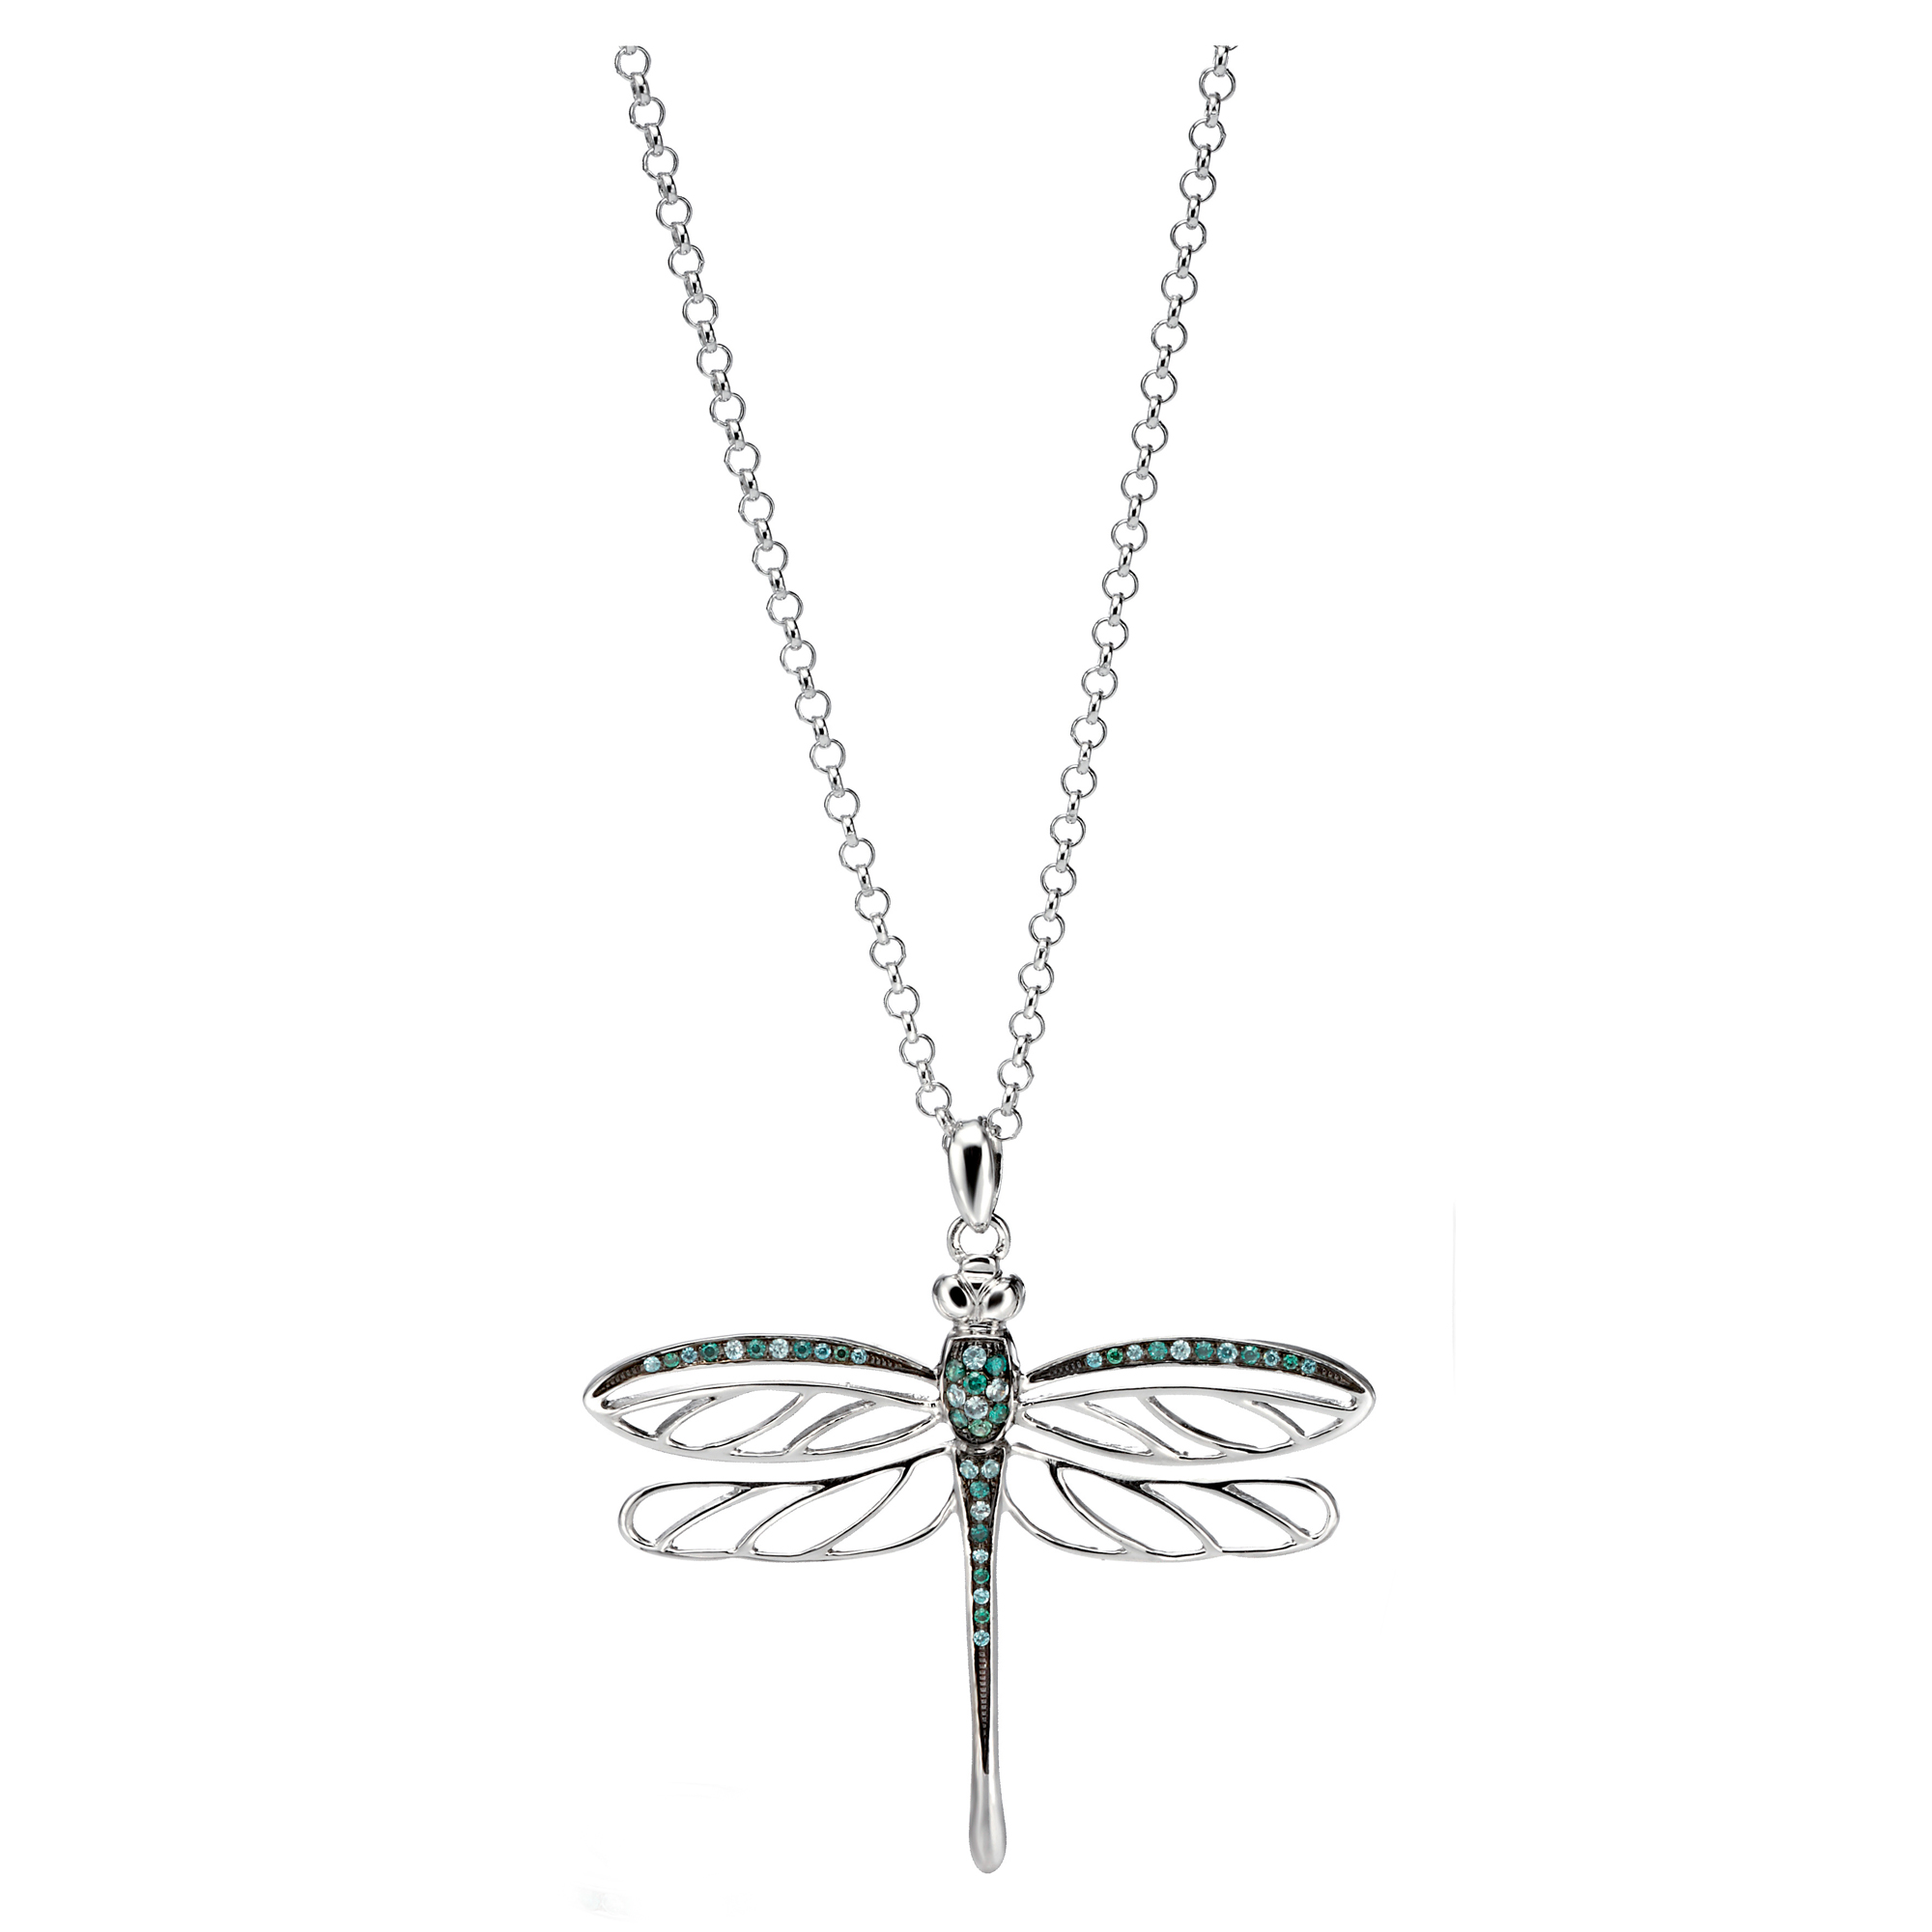 a image view lifestyle necklace gp larger pendant dragonfly